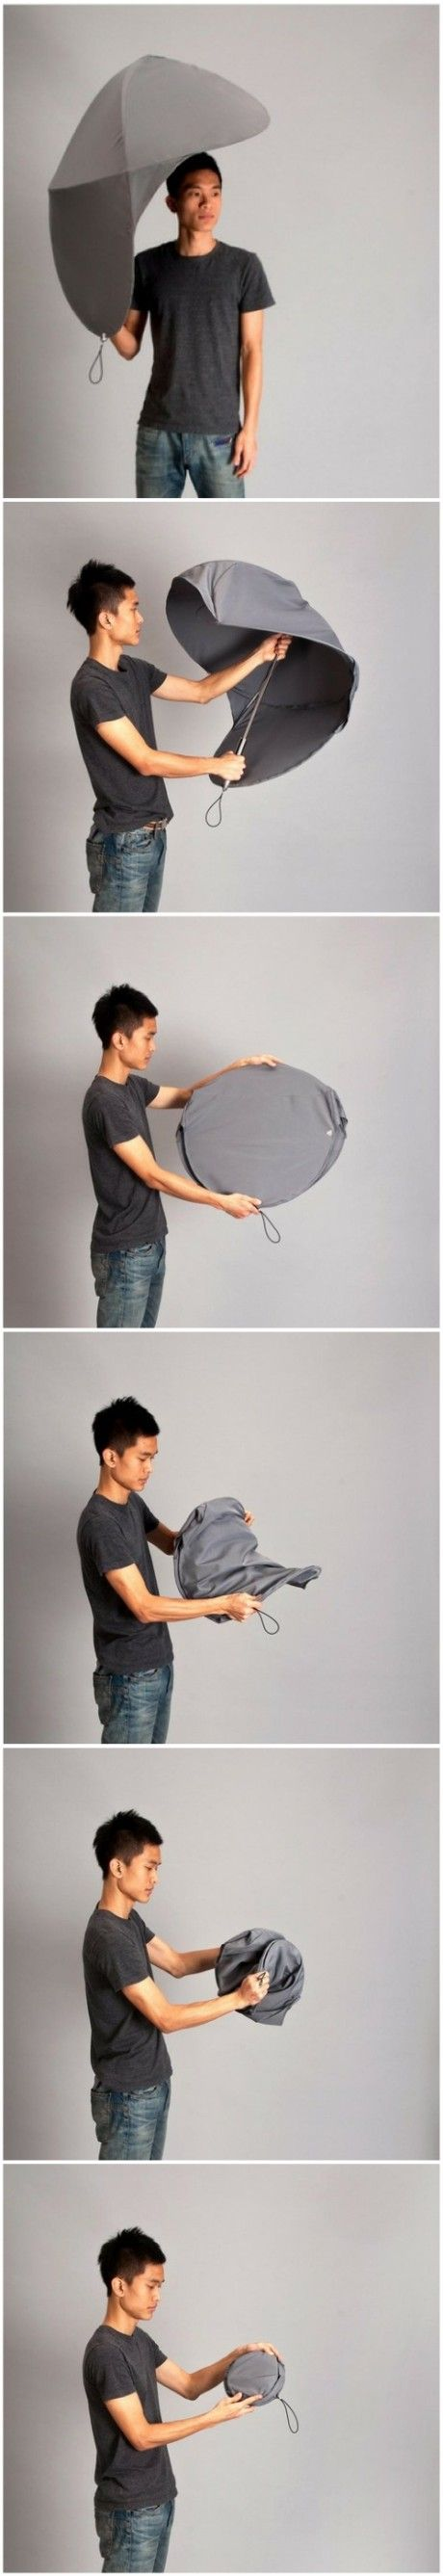 Creative umbrella design.